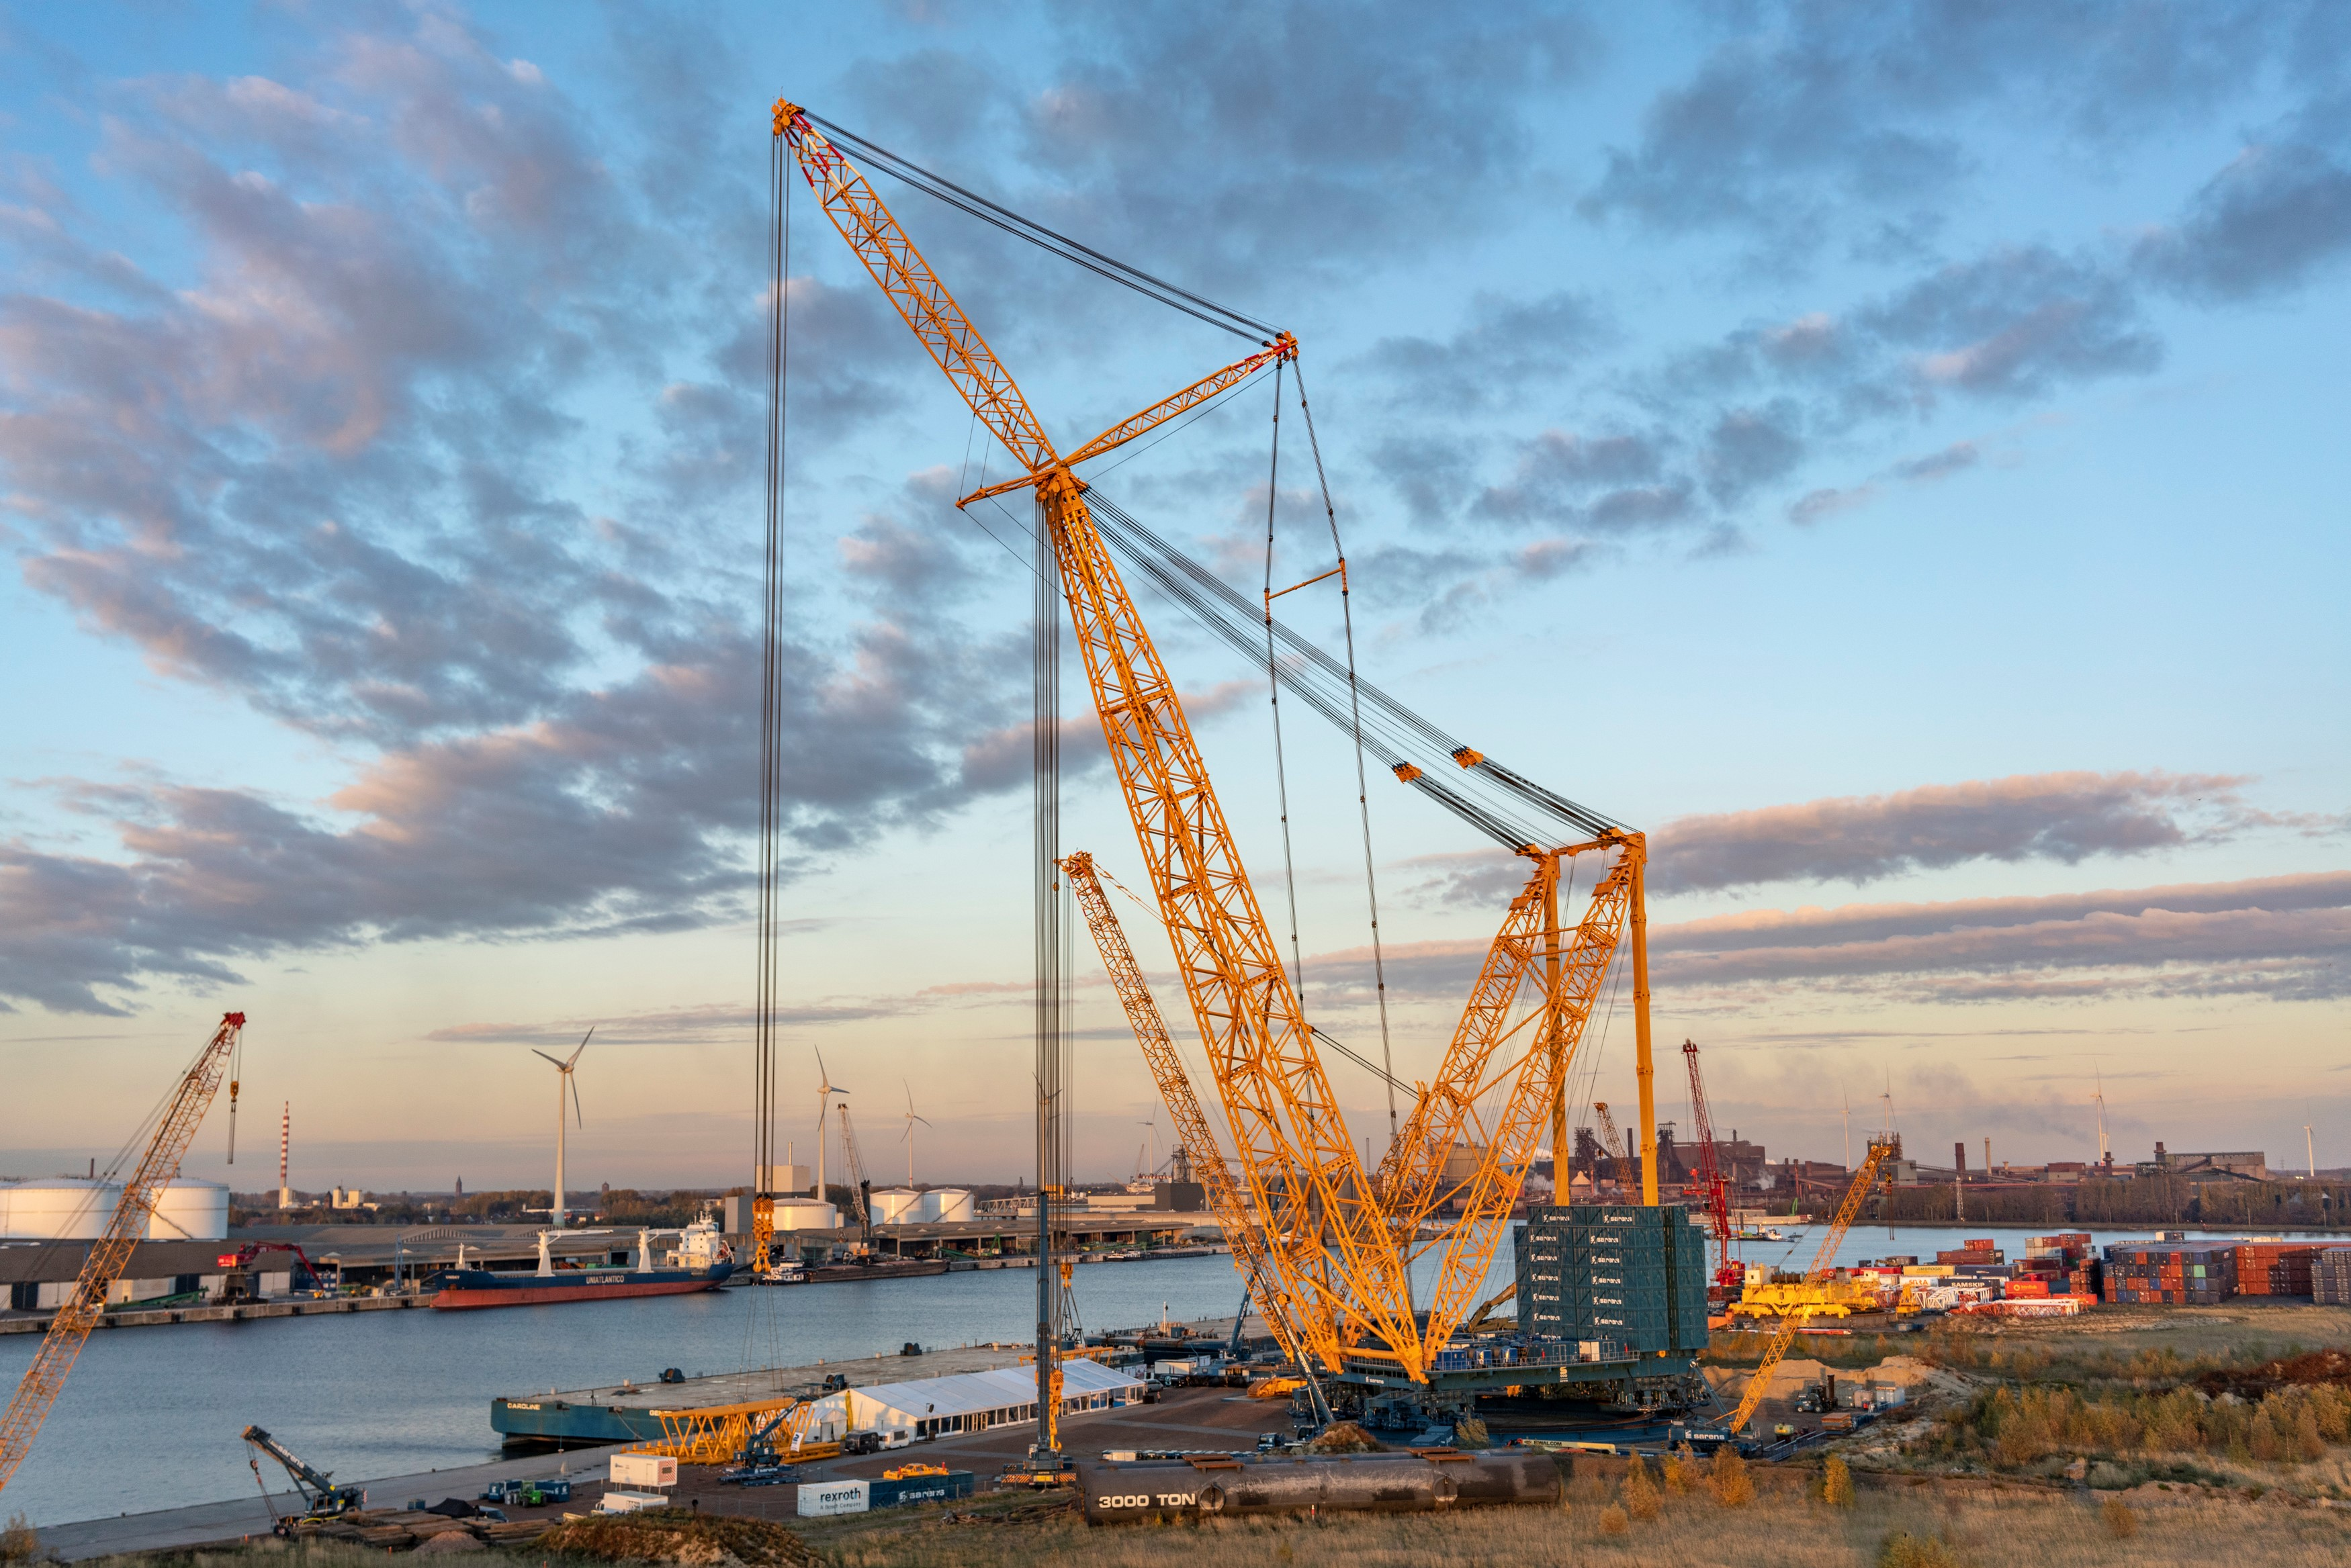 Sarens has launched the largest crane in the world